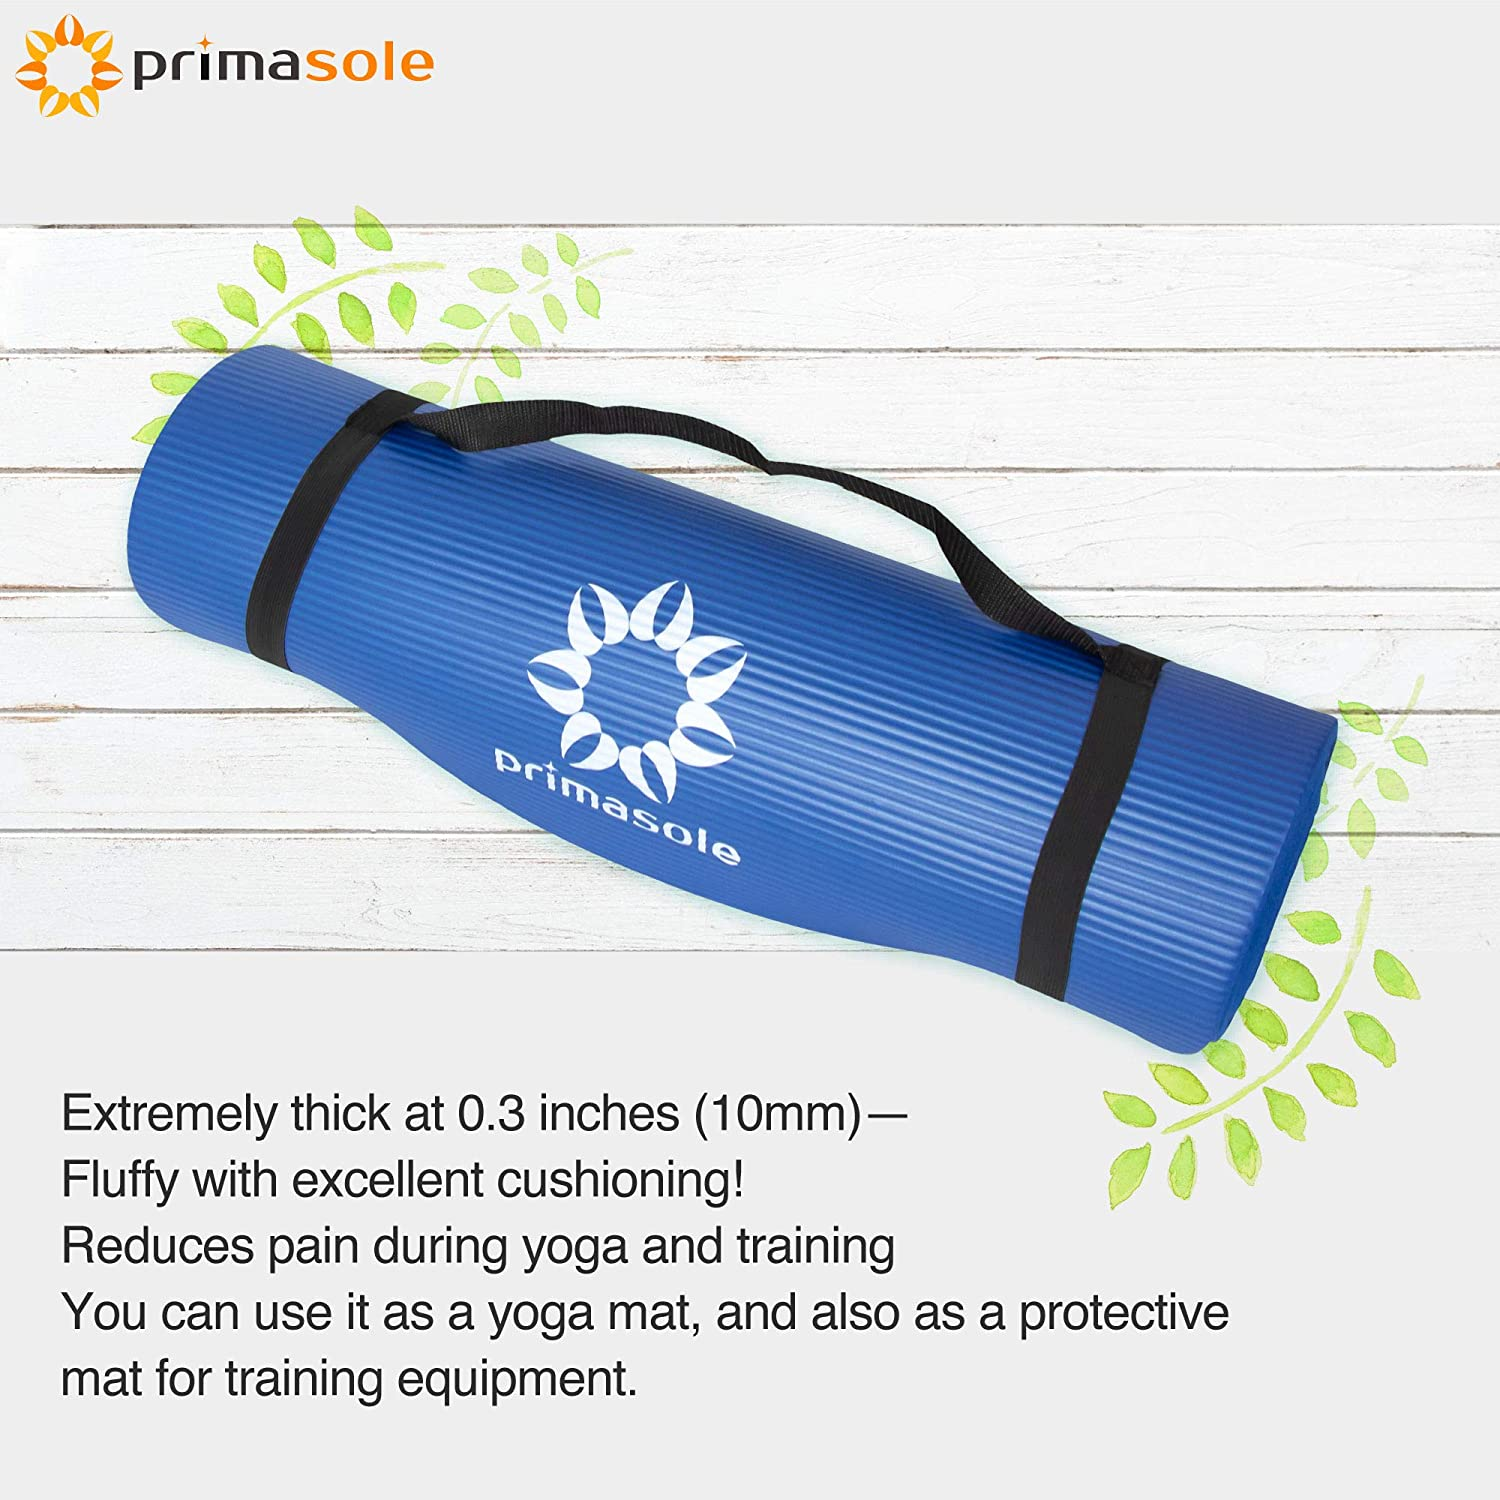 Primasole 【 Limited Brand】 Yoga Mat Training Mat Non-Slip Horizontal Stripe Embossed with Carrying Strap Storage Case Royal Blue Color 72 L/×24 W/×1//2 Inch Thick PSS91NH032A